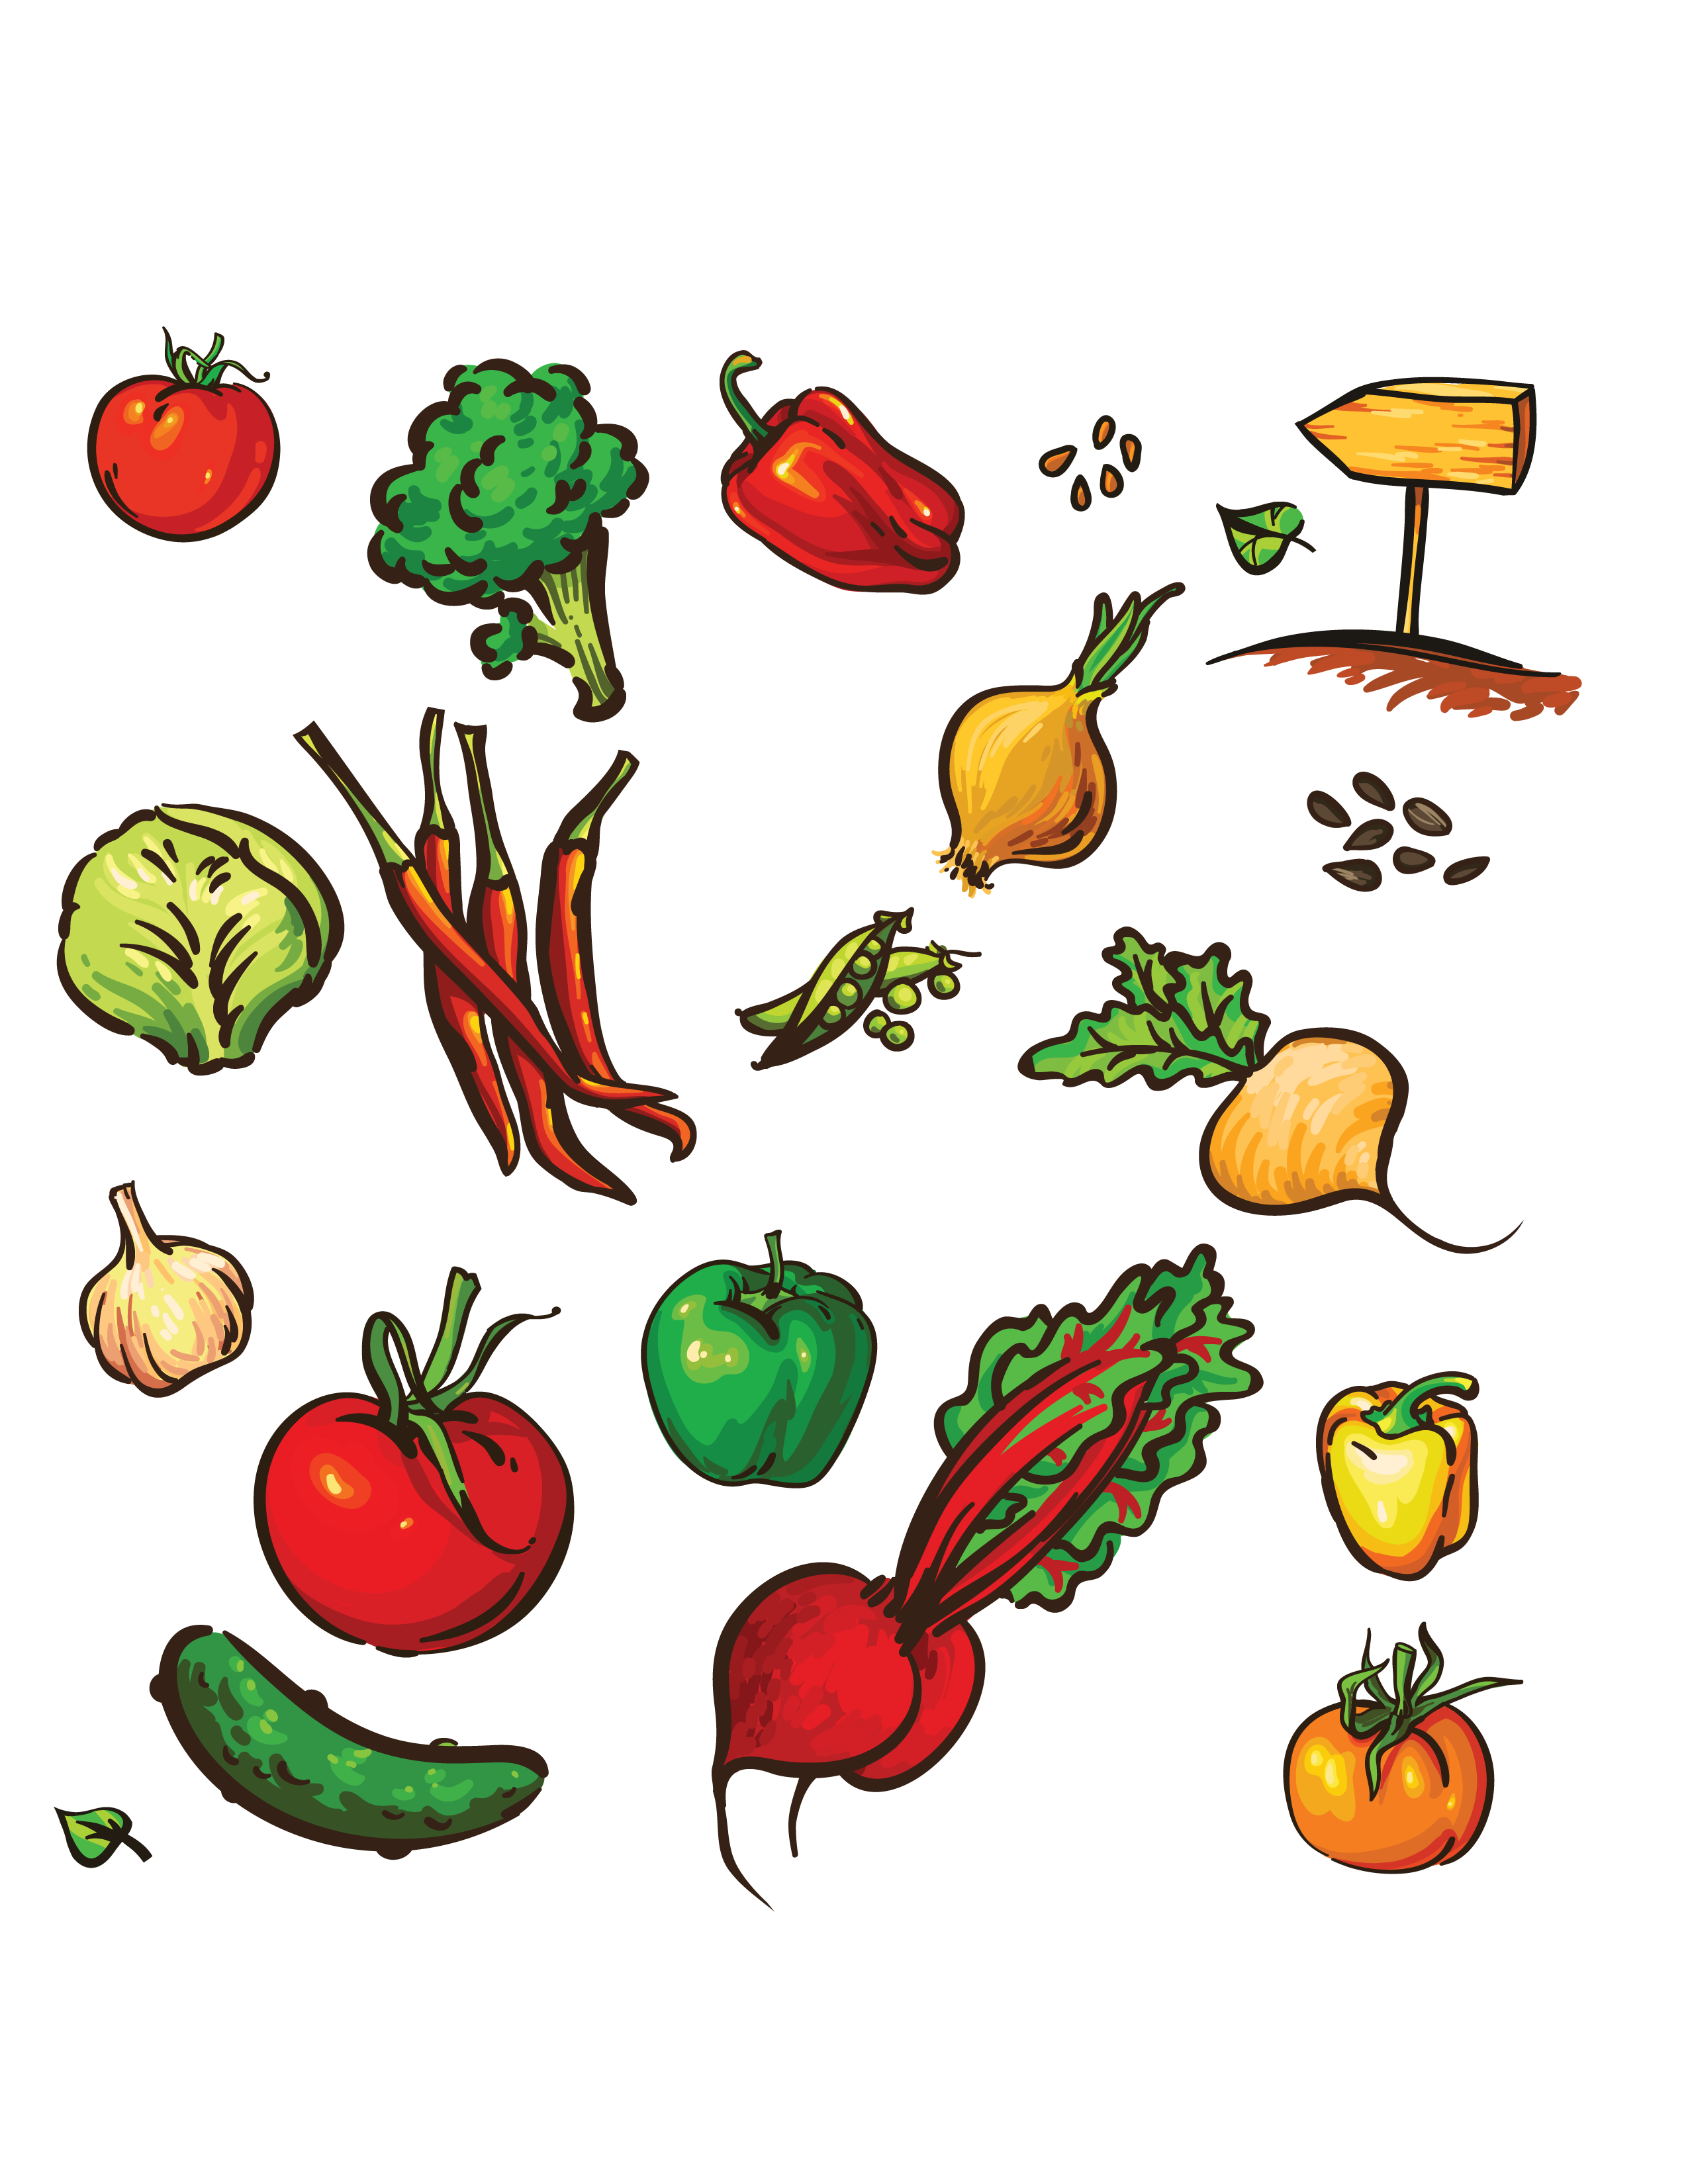 Cognitive puzzles about vegetables and fruits 61